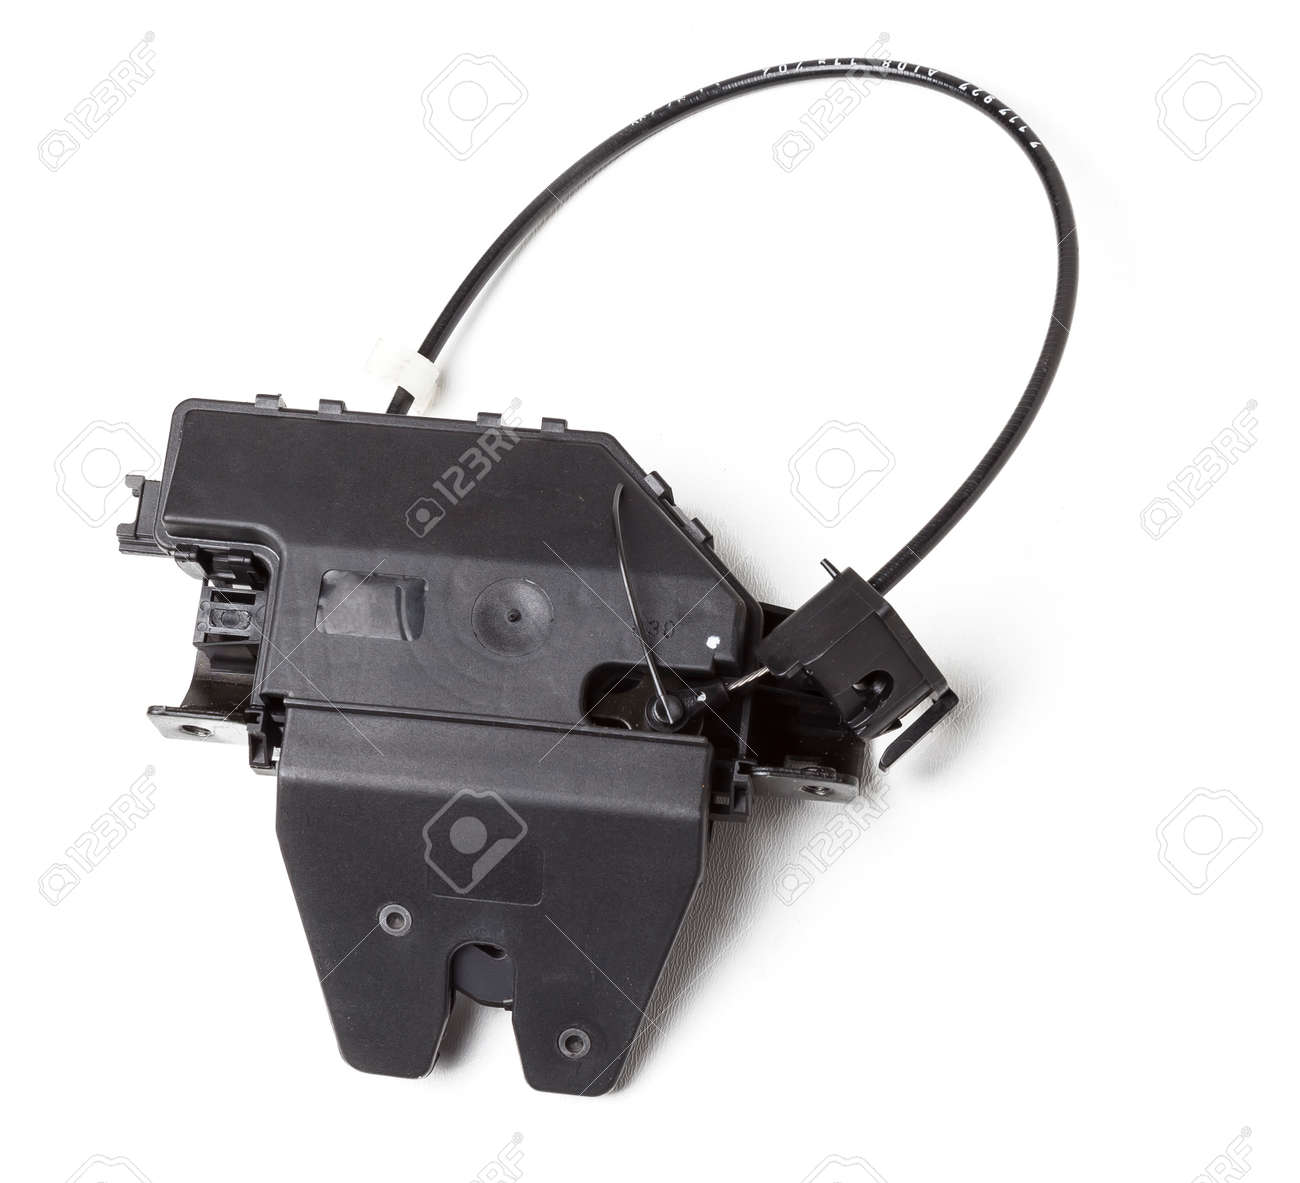 Detail of a car spare part made of black plastic and metal - rear trunk lock separately isolated on a white background. Repair in a car workshop, equipment for sale. - 169387995